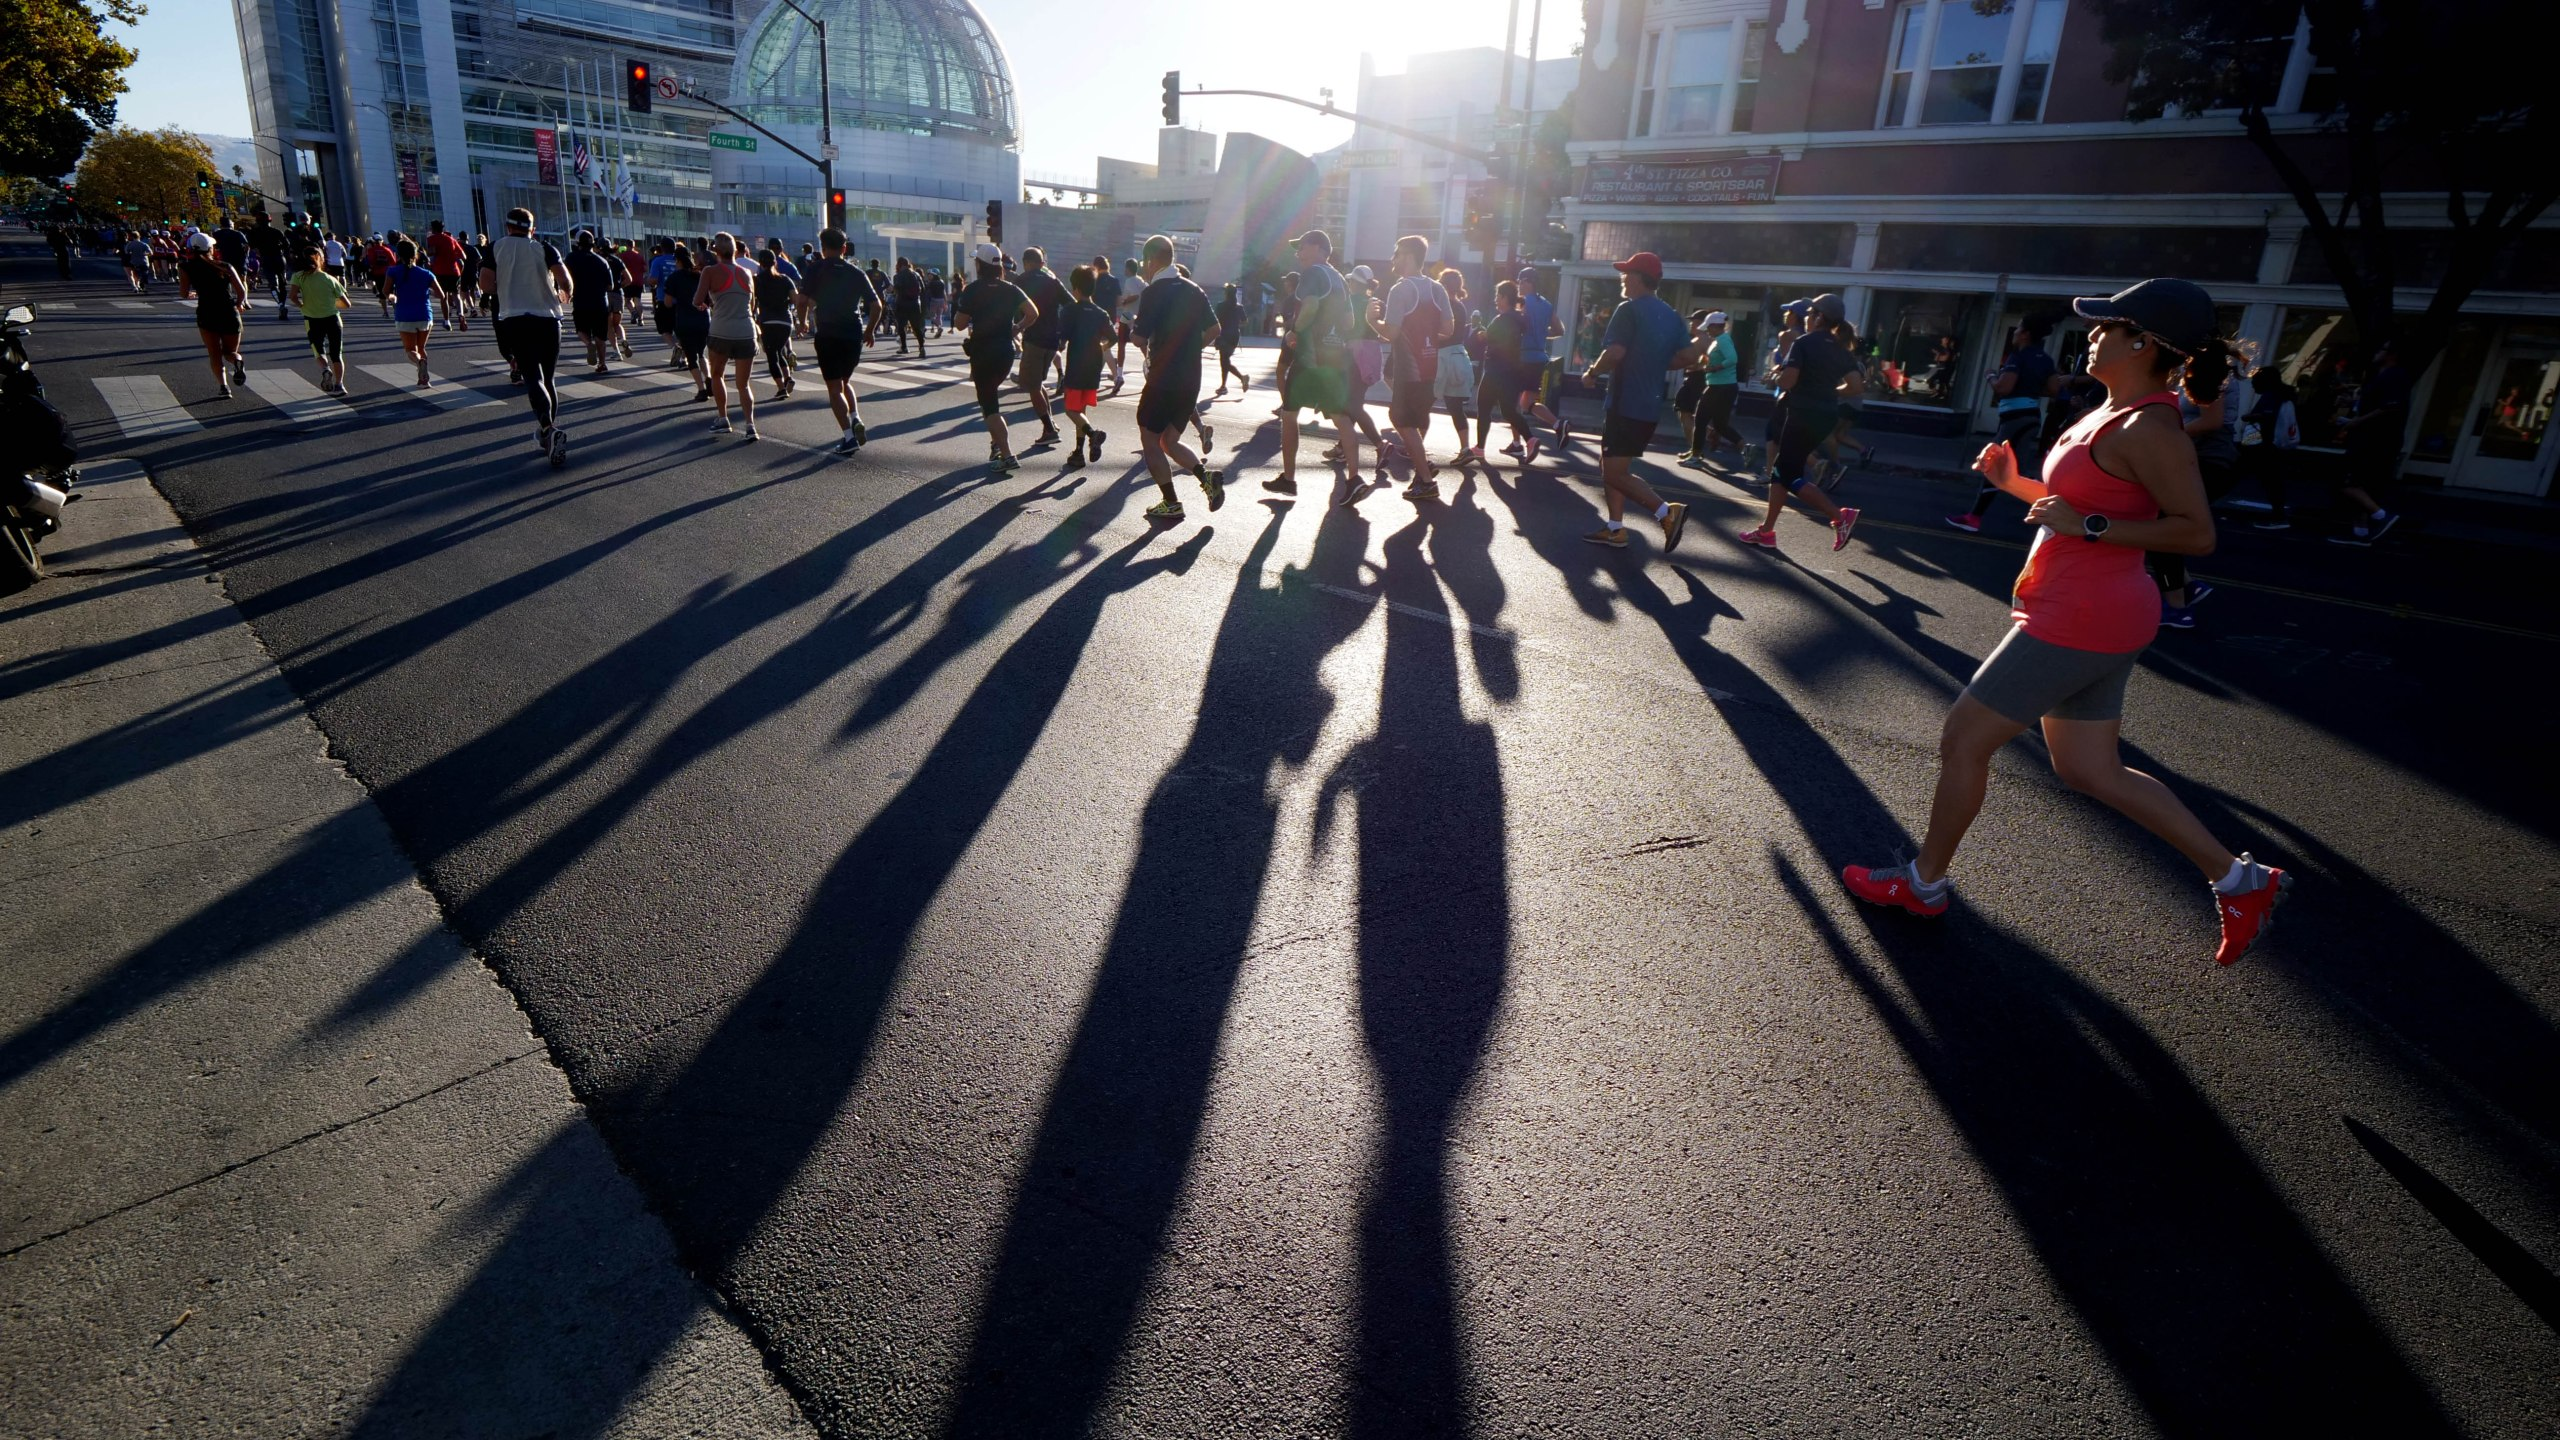 Runners approach City Hall during the Michelob Ultra Rock 'n' Roll San Jose 1/2 Marathon and 10K on Oct. 7, 2018 in San Jose, California. (Credit: Donald Miralle/Getty Images of Rock 'n' Roll)